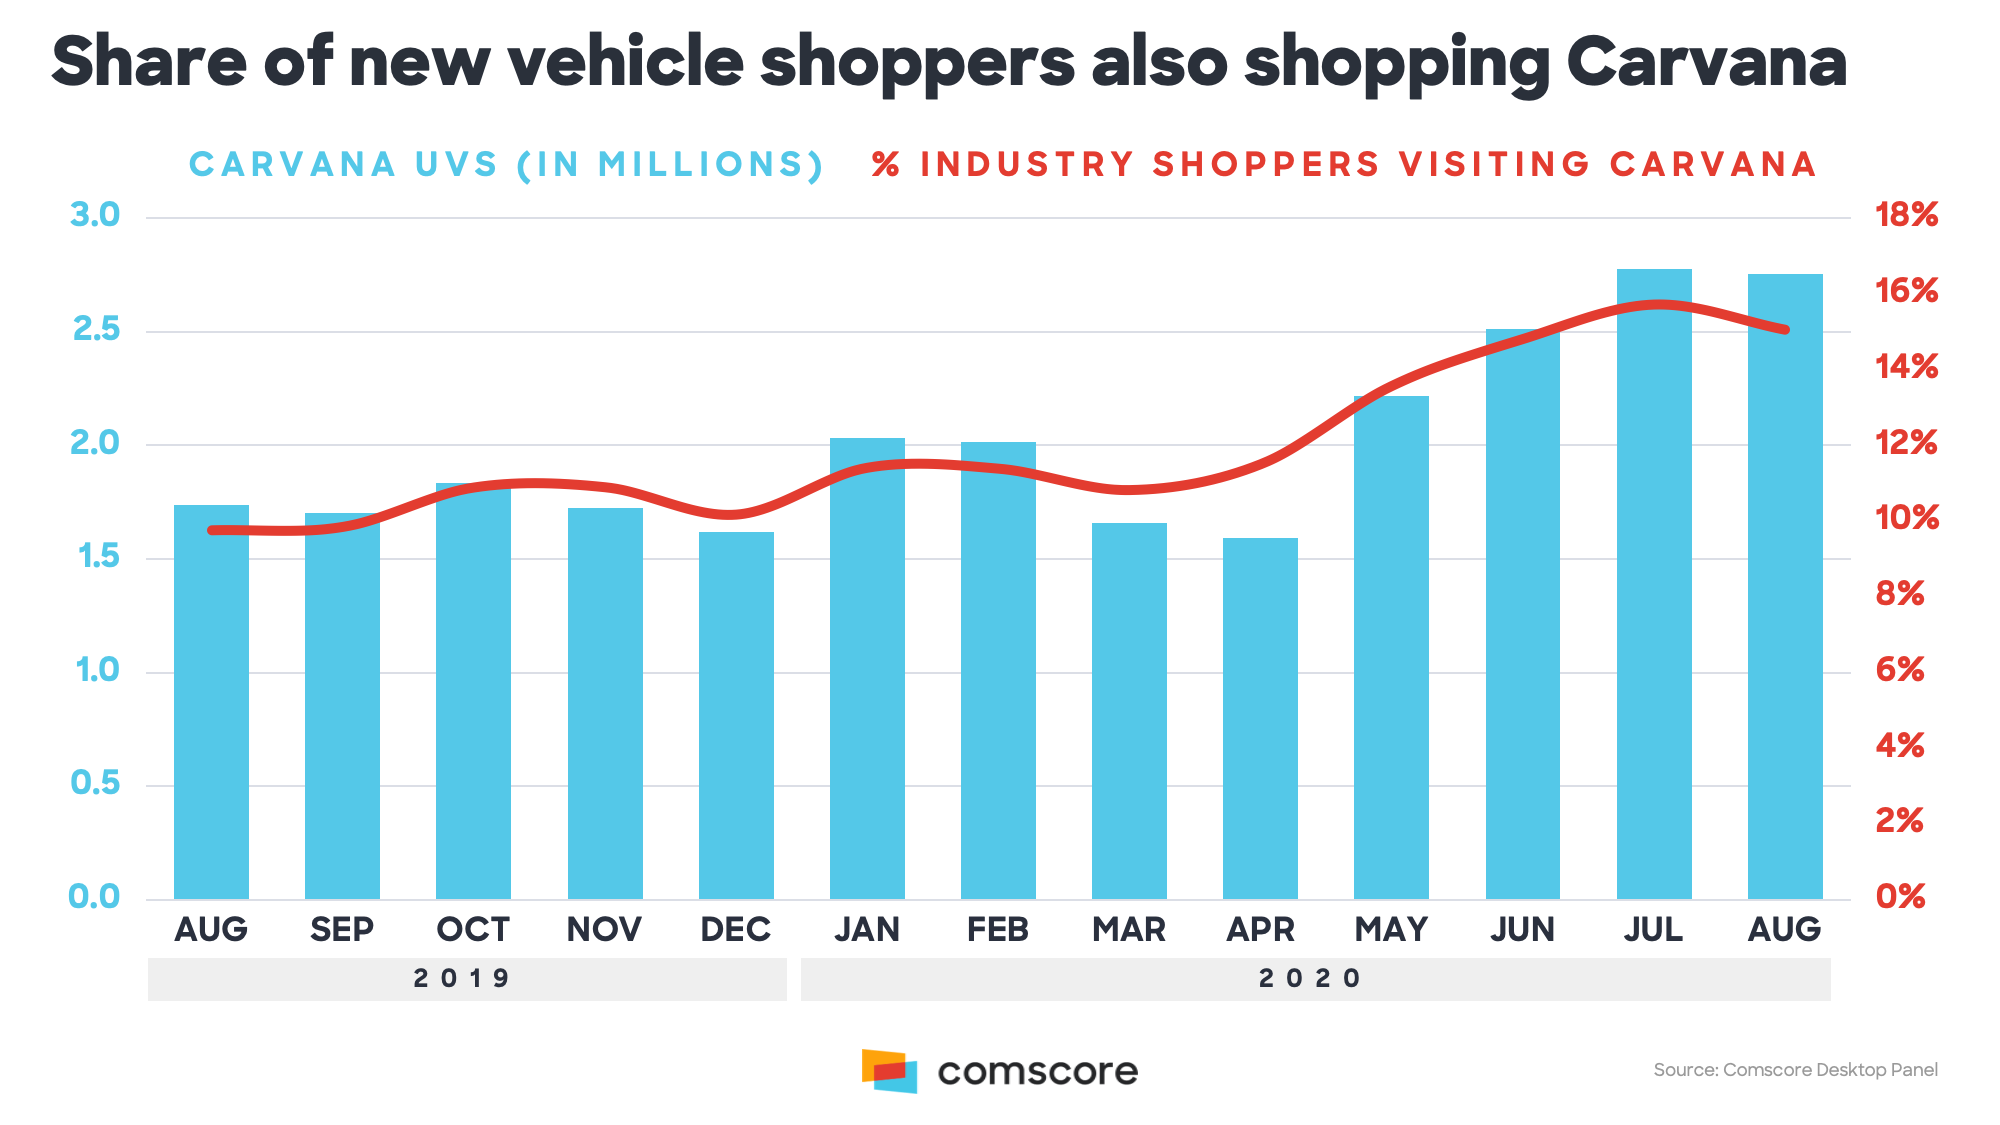 Share of New Vehicle Shoppers Also Shopping Carvana